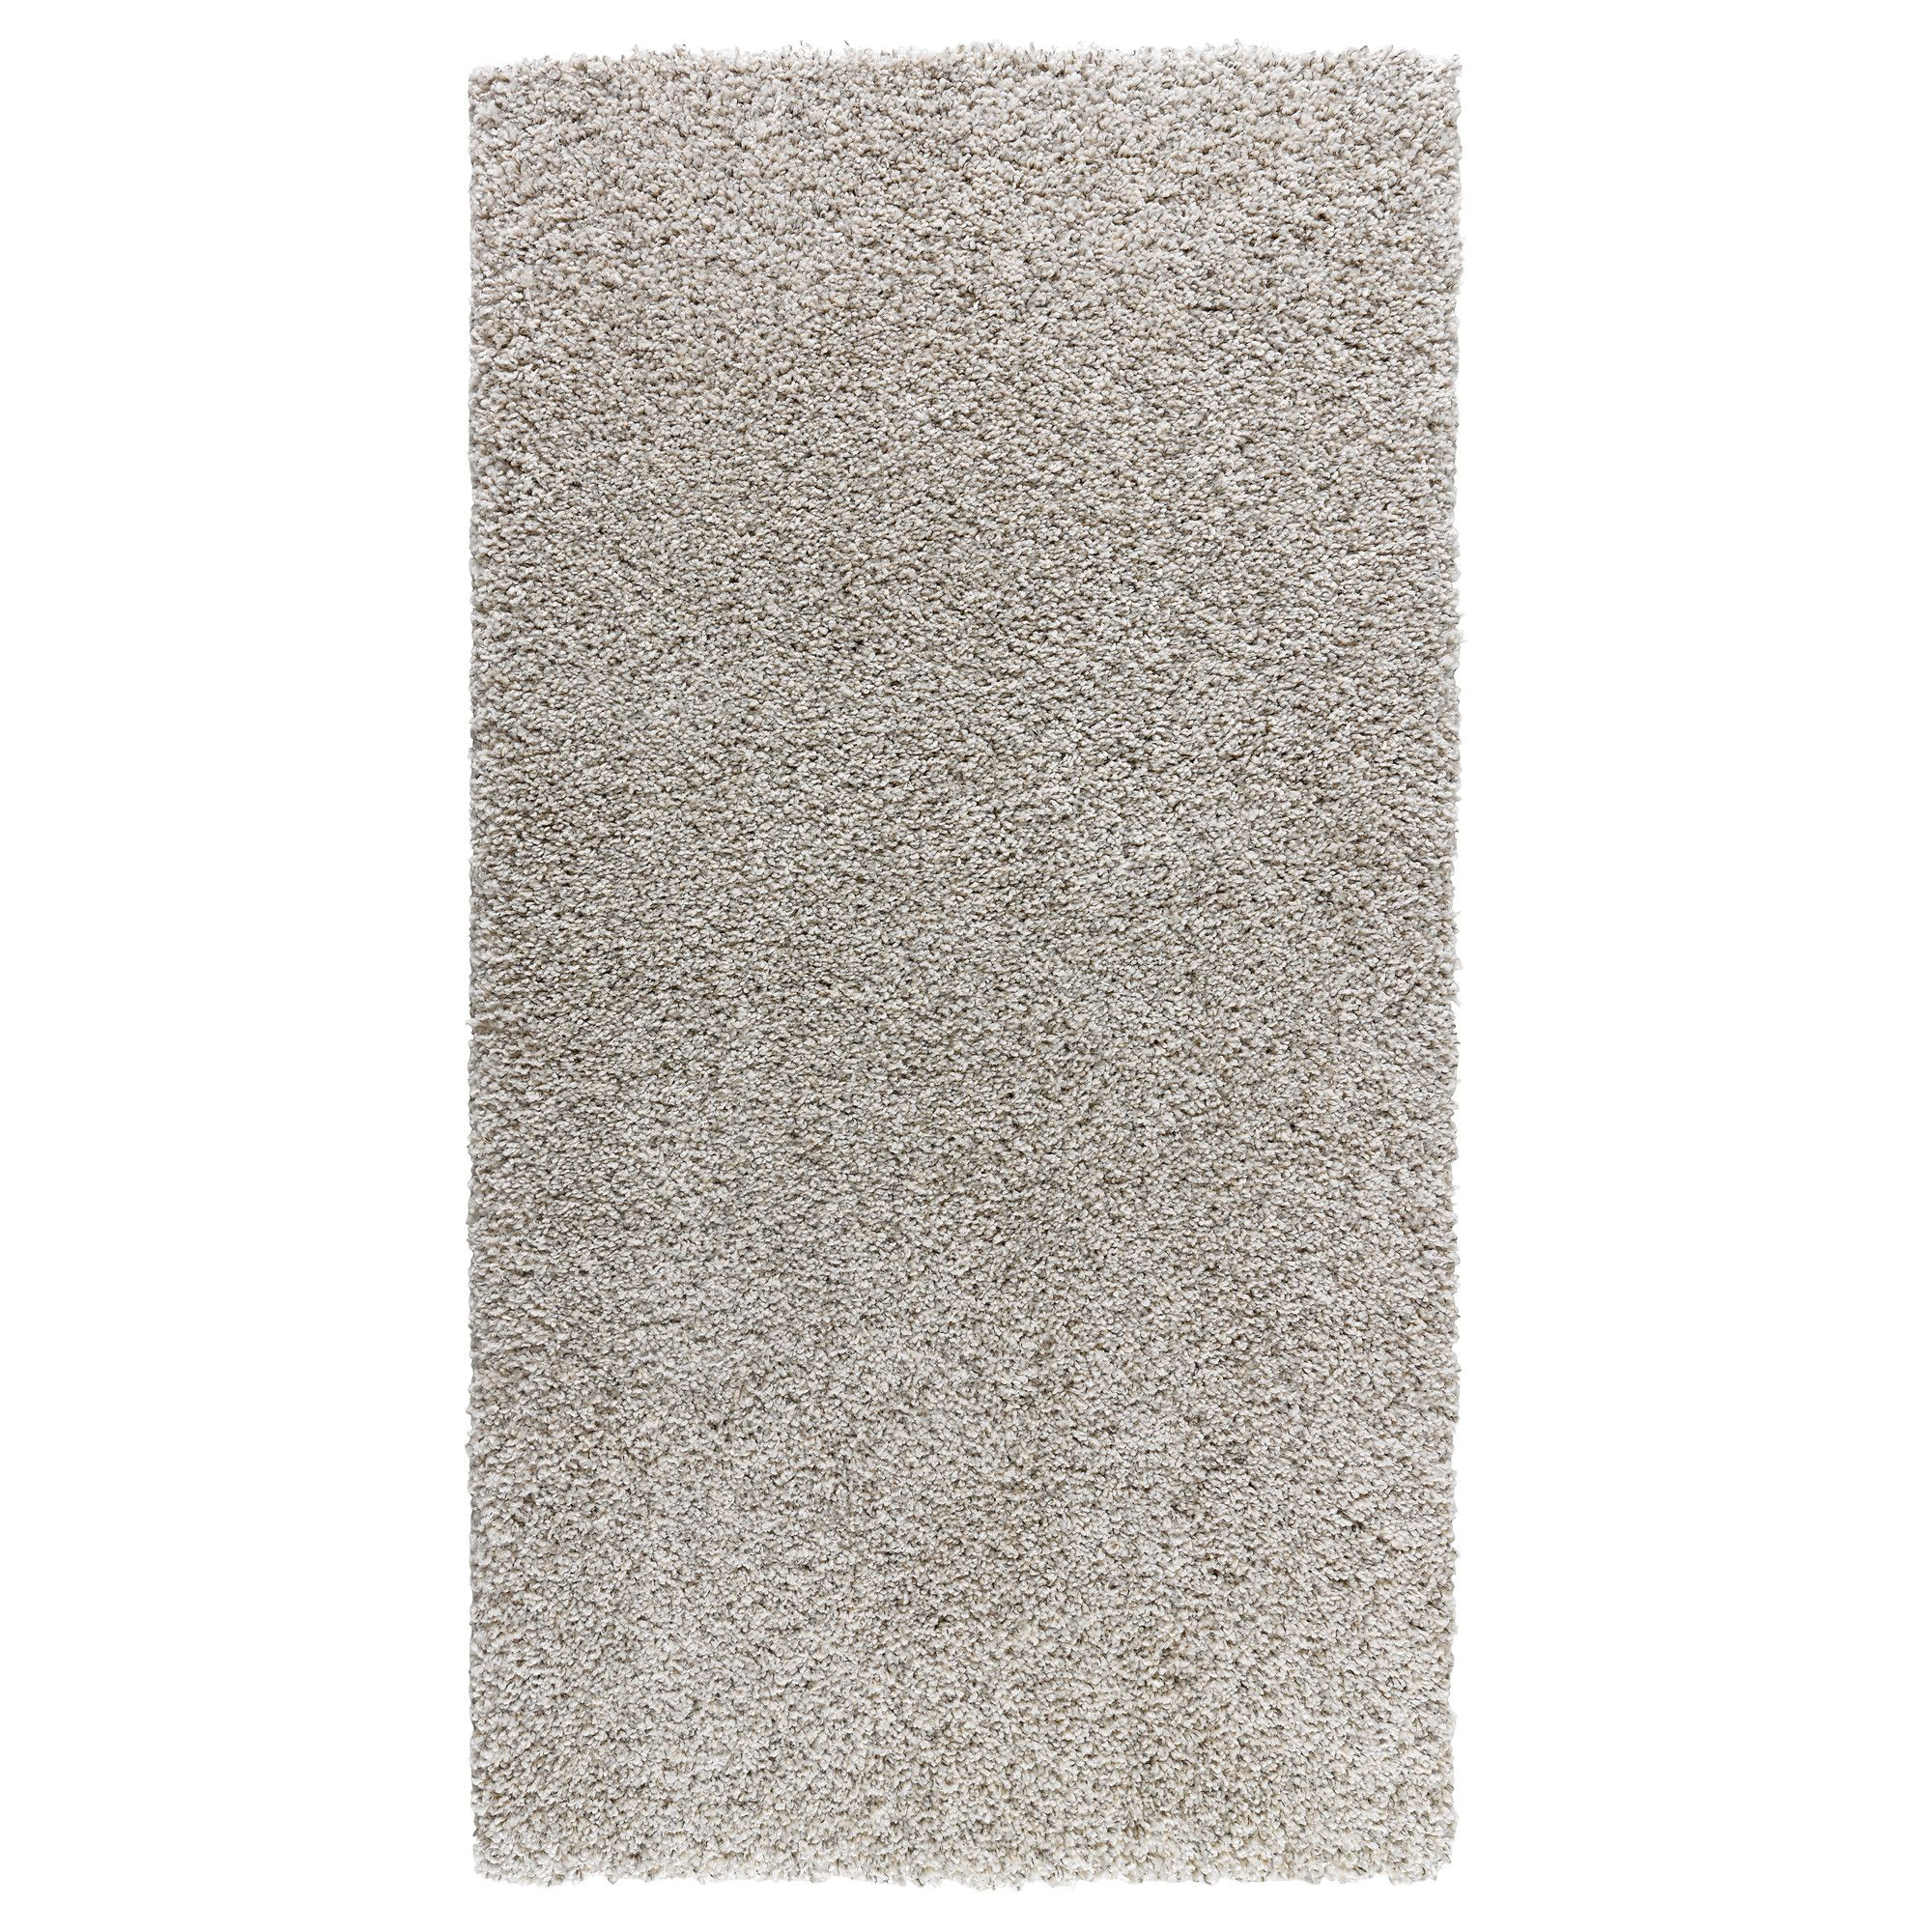 Alhede Teppich Ikea Ikea Alhede Rug High Pile 2 39 7 Quotx4 39 11 Quot The